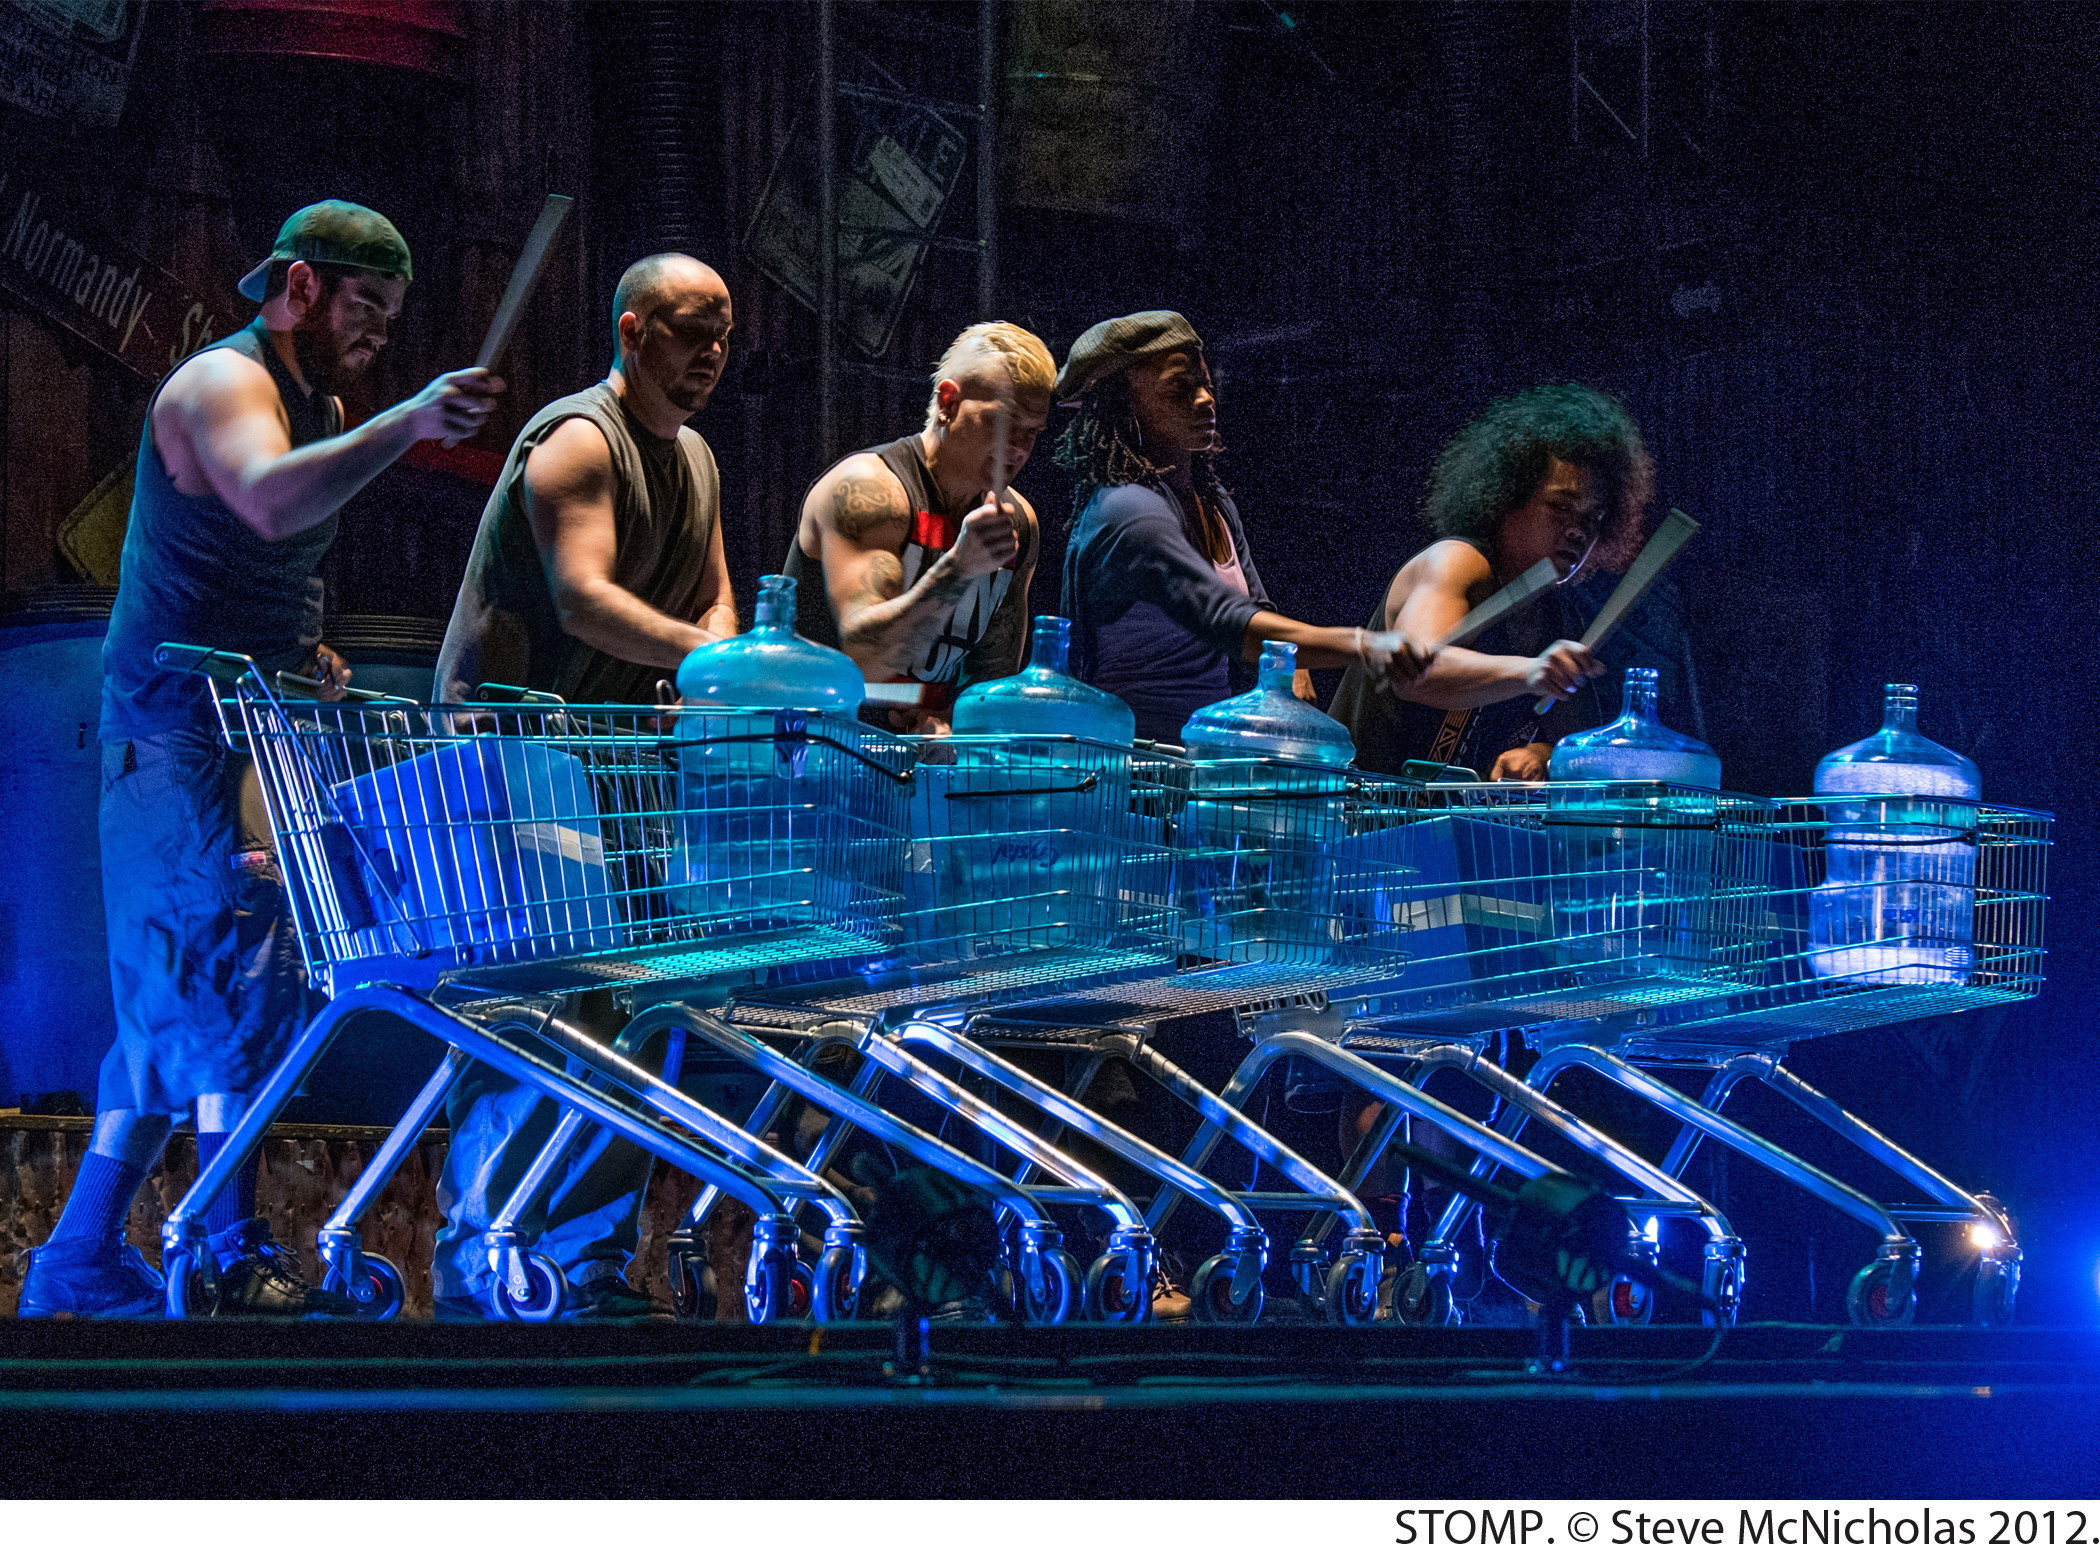 STOMP, A Show of Sounds, Now at National Theatre